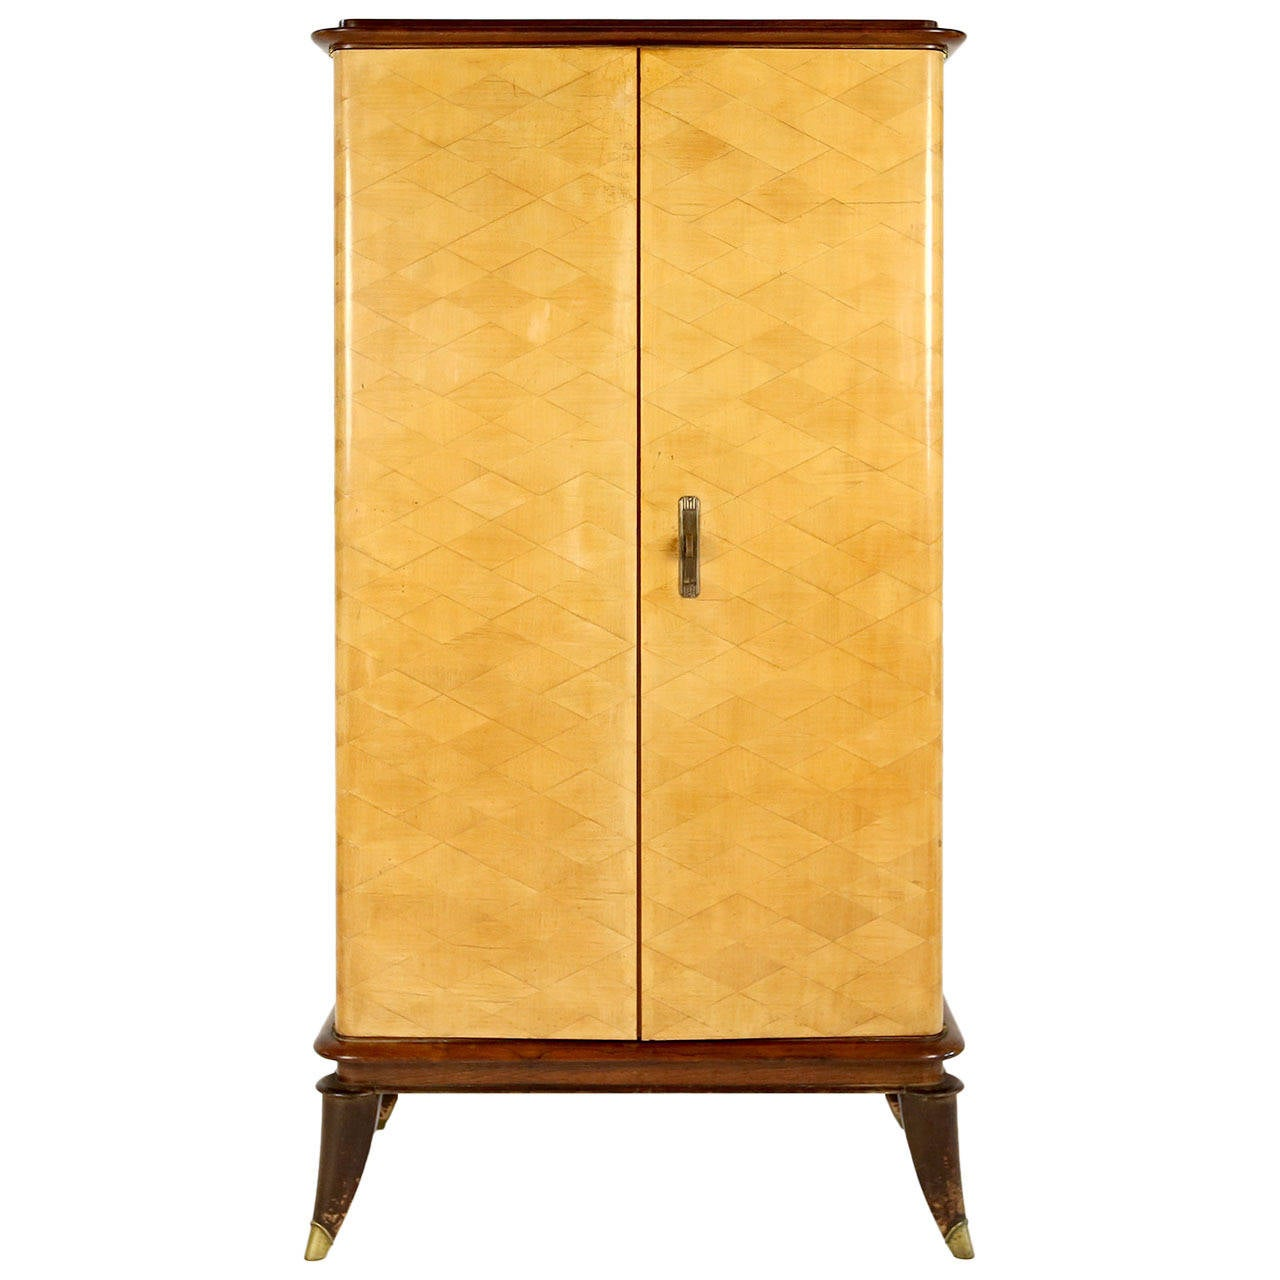 French meuble d 39 appui by jallot at 1stdibs for Meuble for french furniture